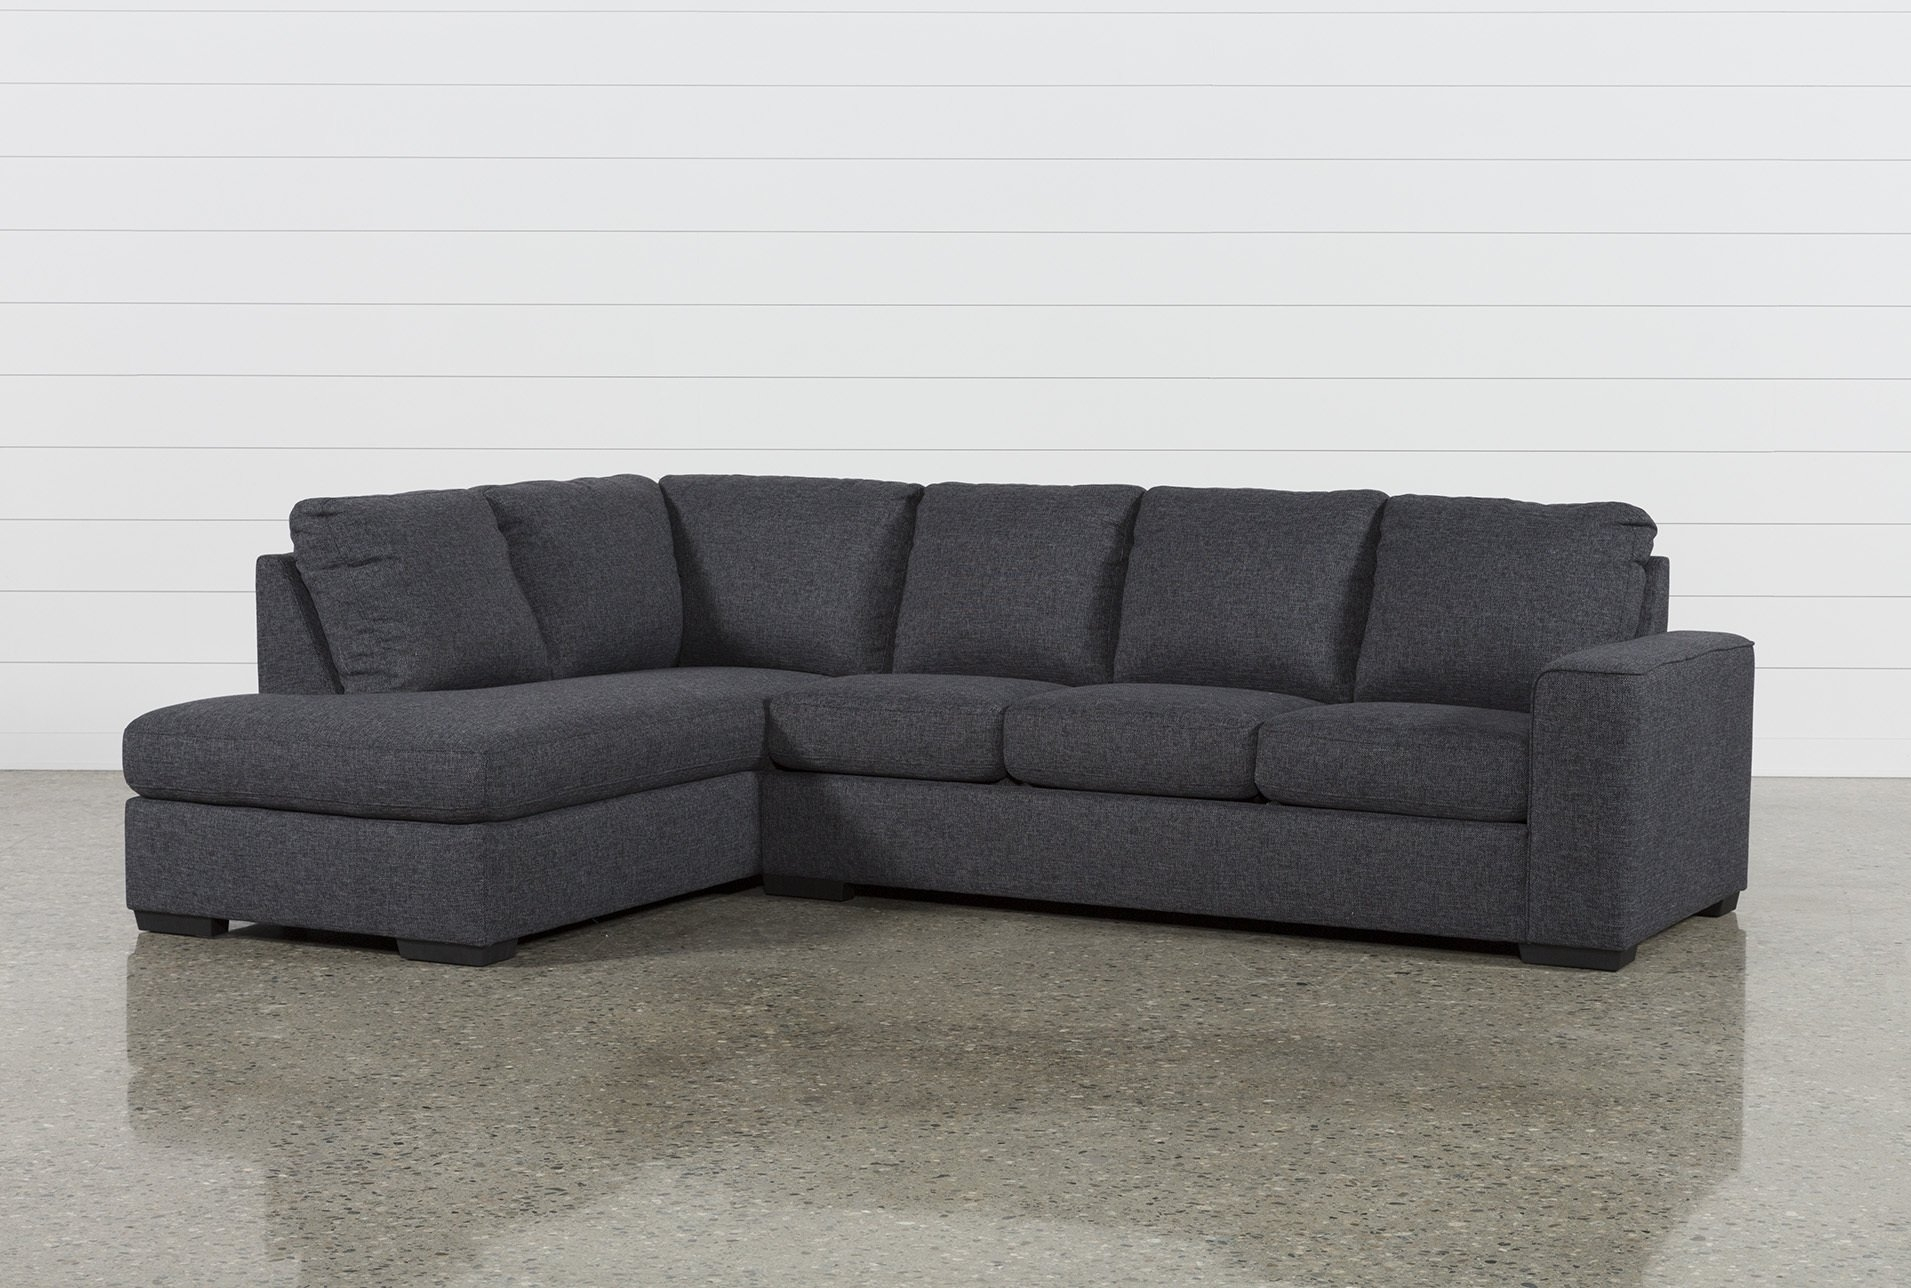 Lucy Dark Grey 2 Piece Sectional W/laf Chaise | Dark Grey And Products In Aspen 2 Piece Sleeper Sectionals With Laf Chaise (Image 18 of 25)